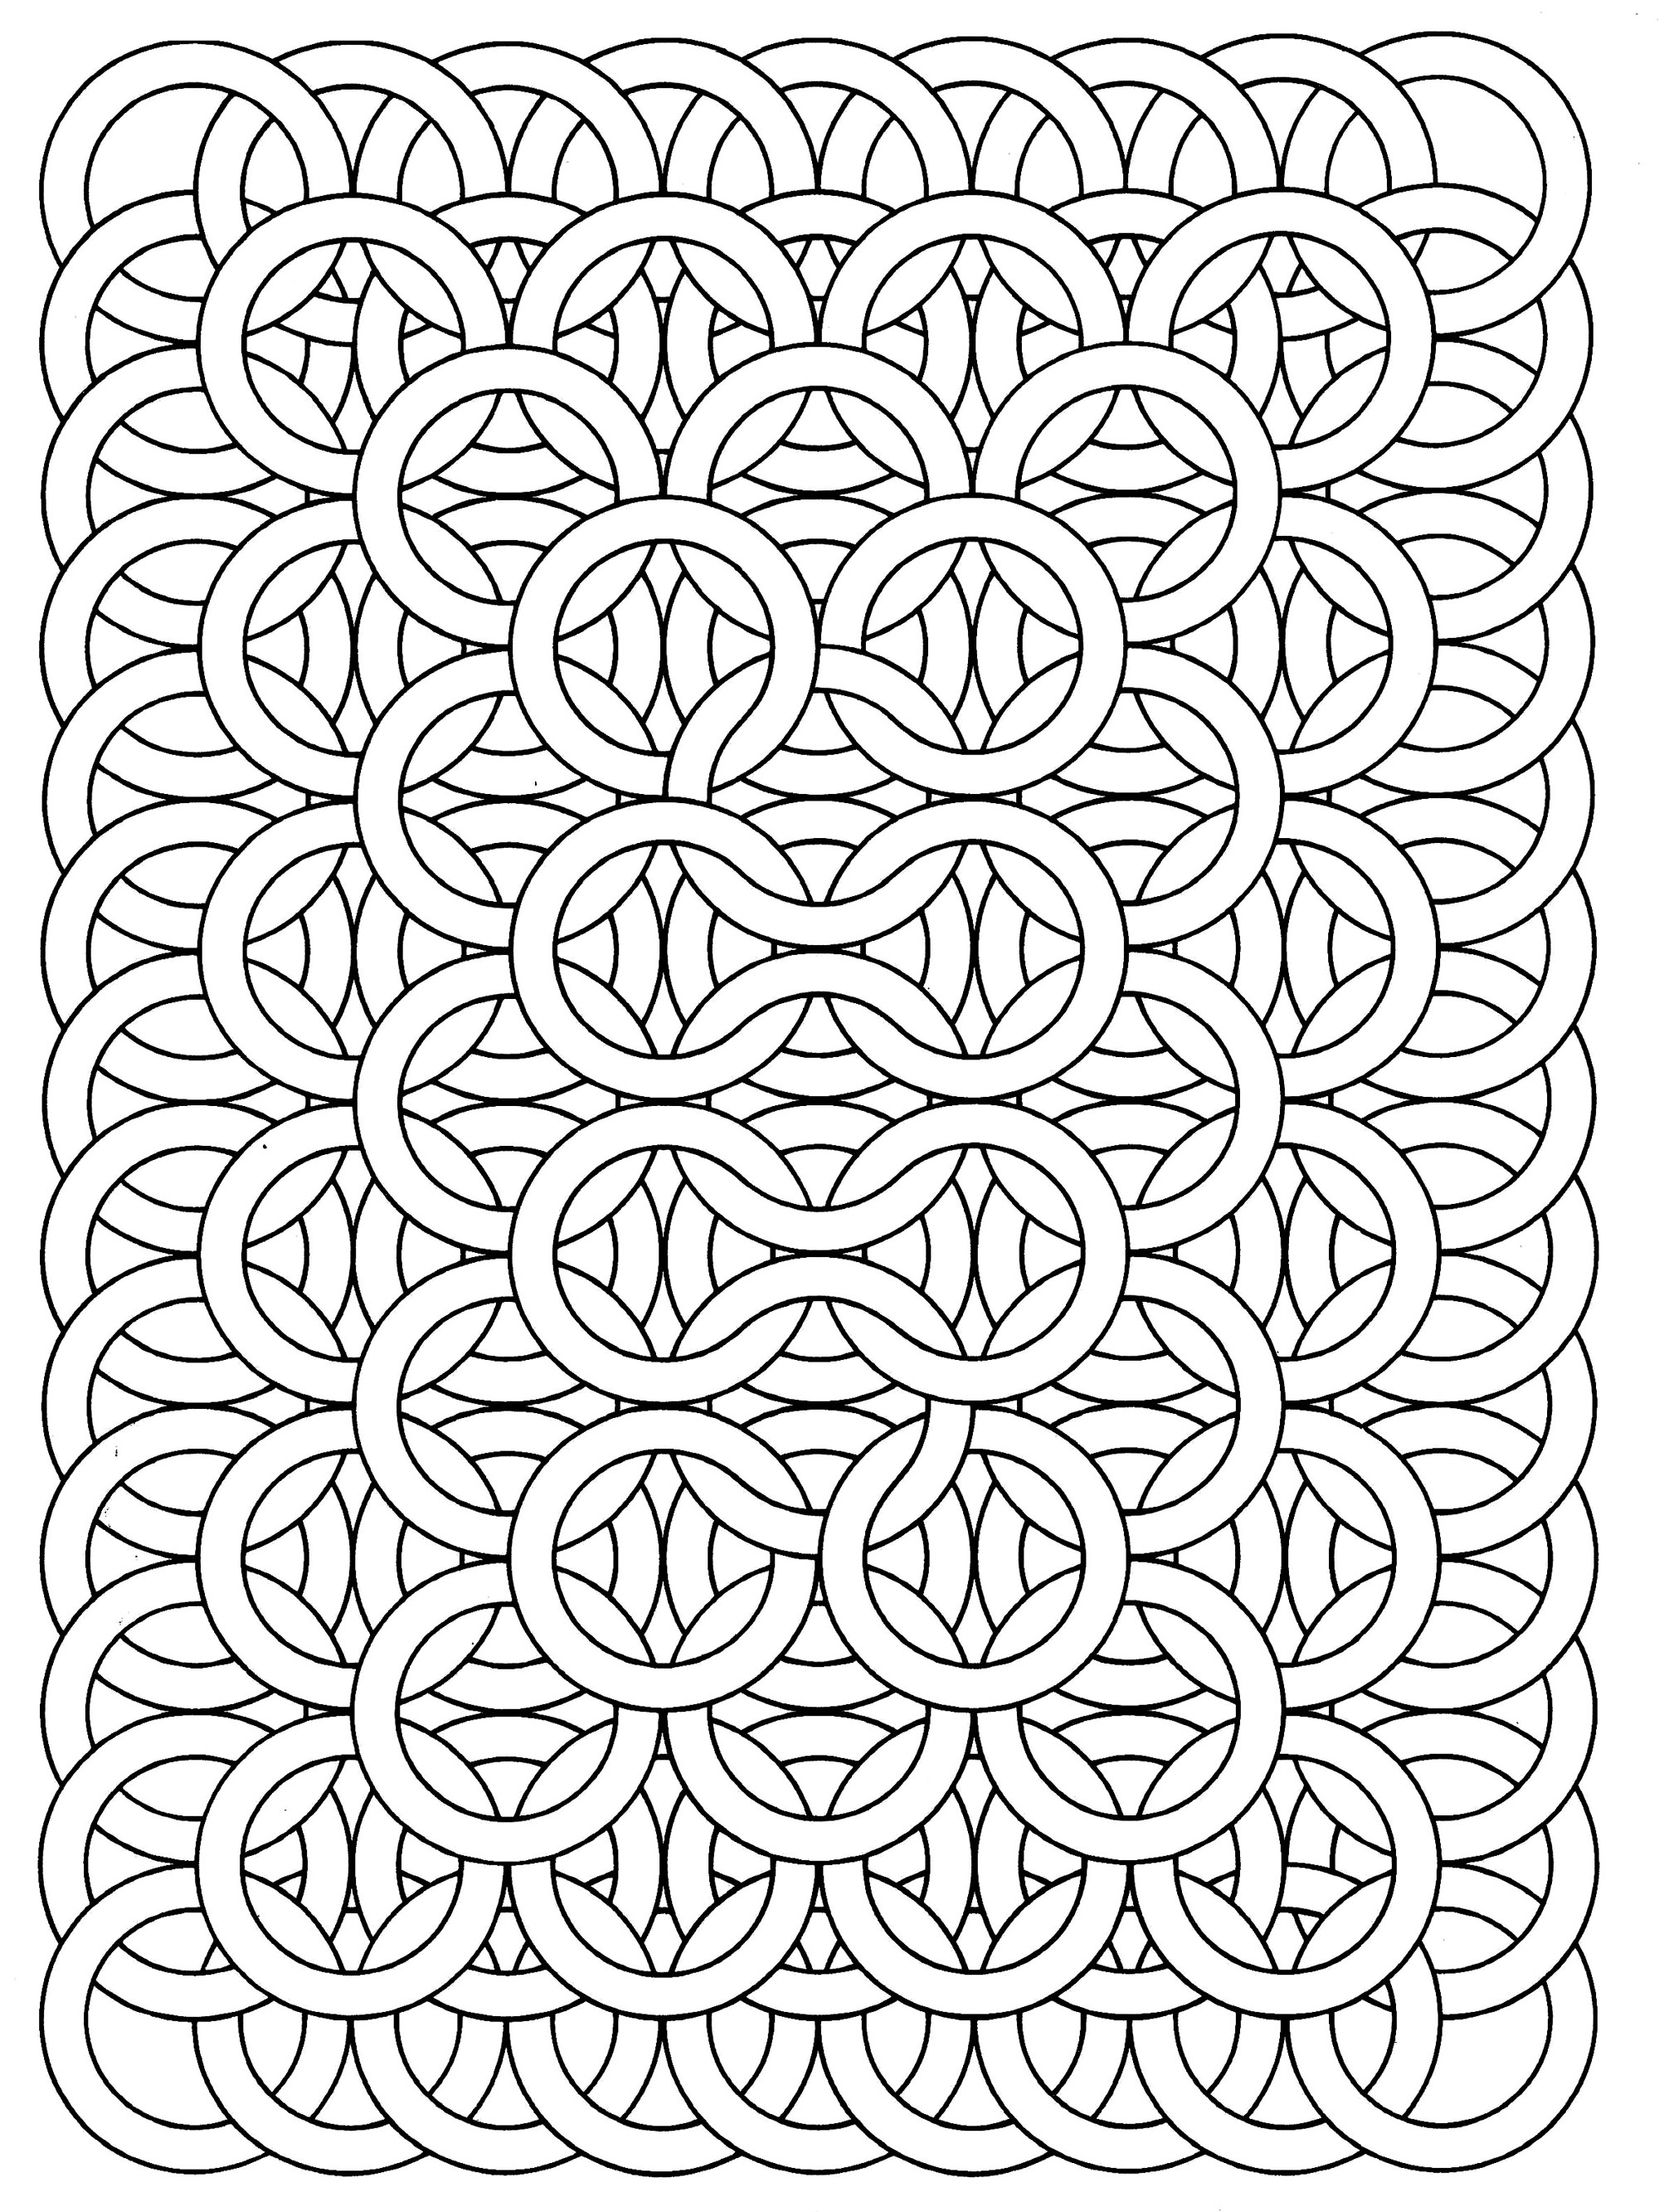 aduly coloring pages - photo#38